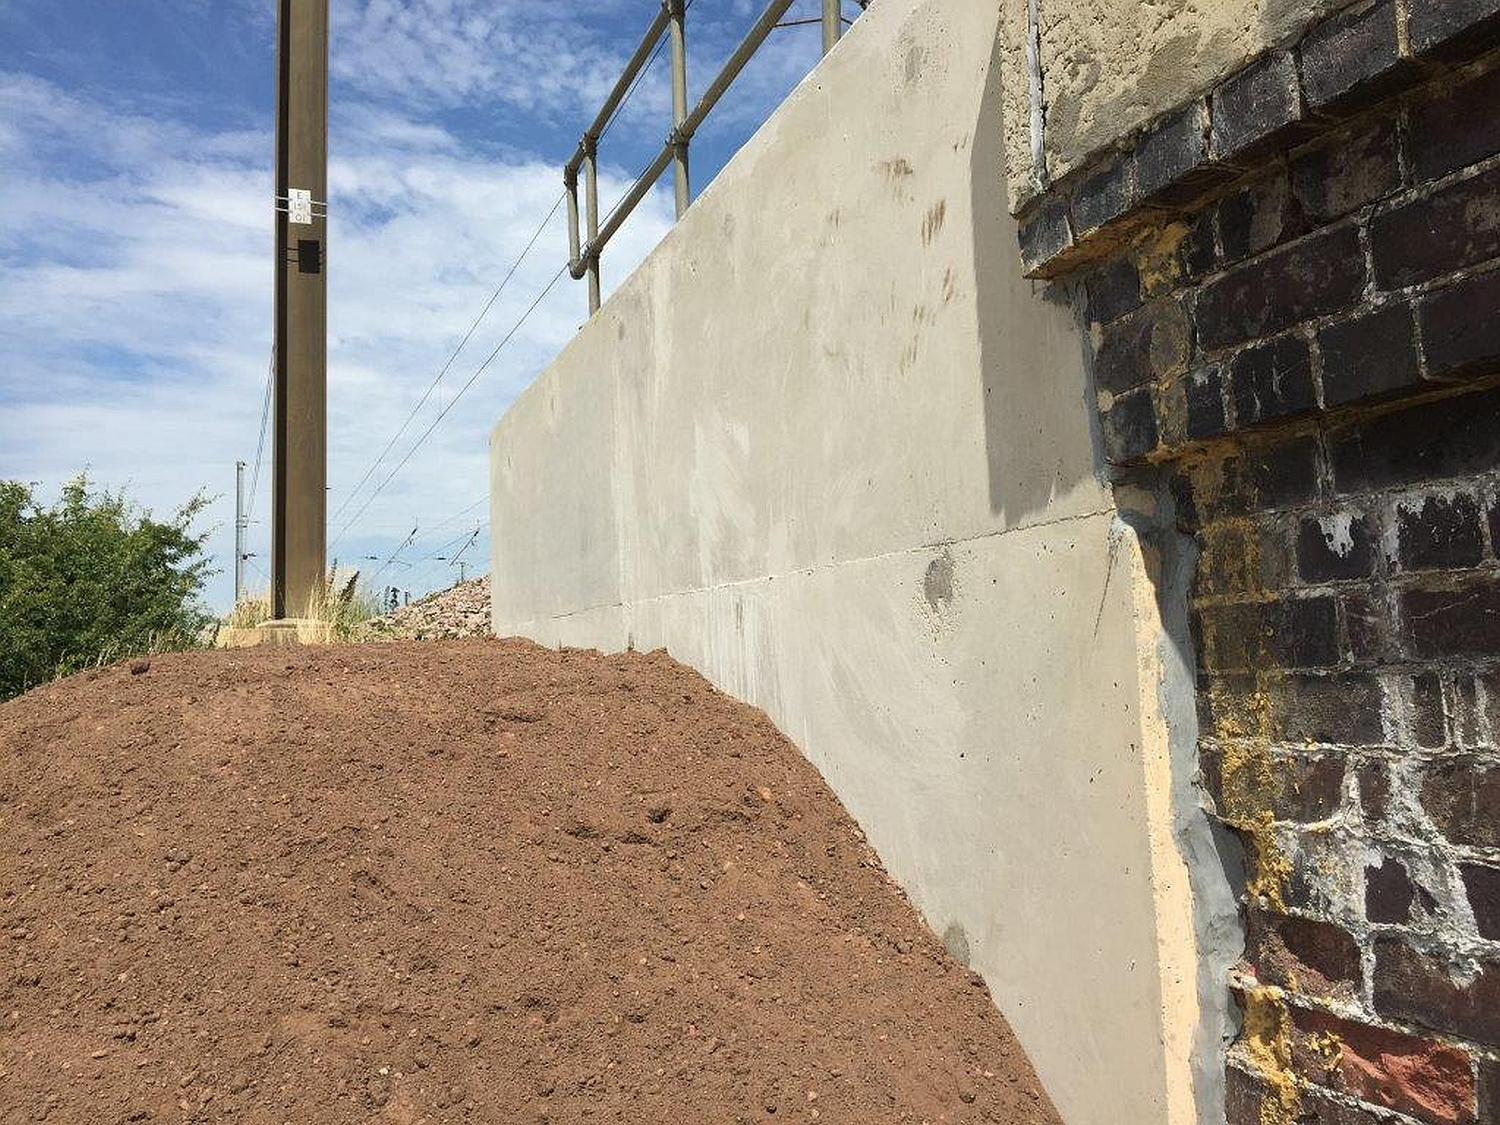 veda_associates_lawn_road_revetment_wall1_complete2.jpg